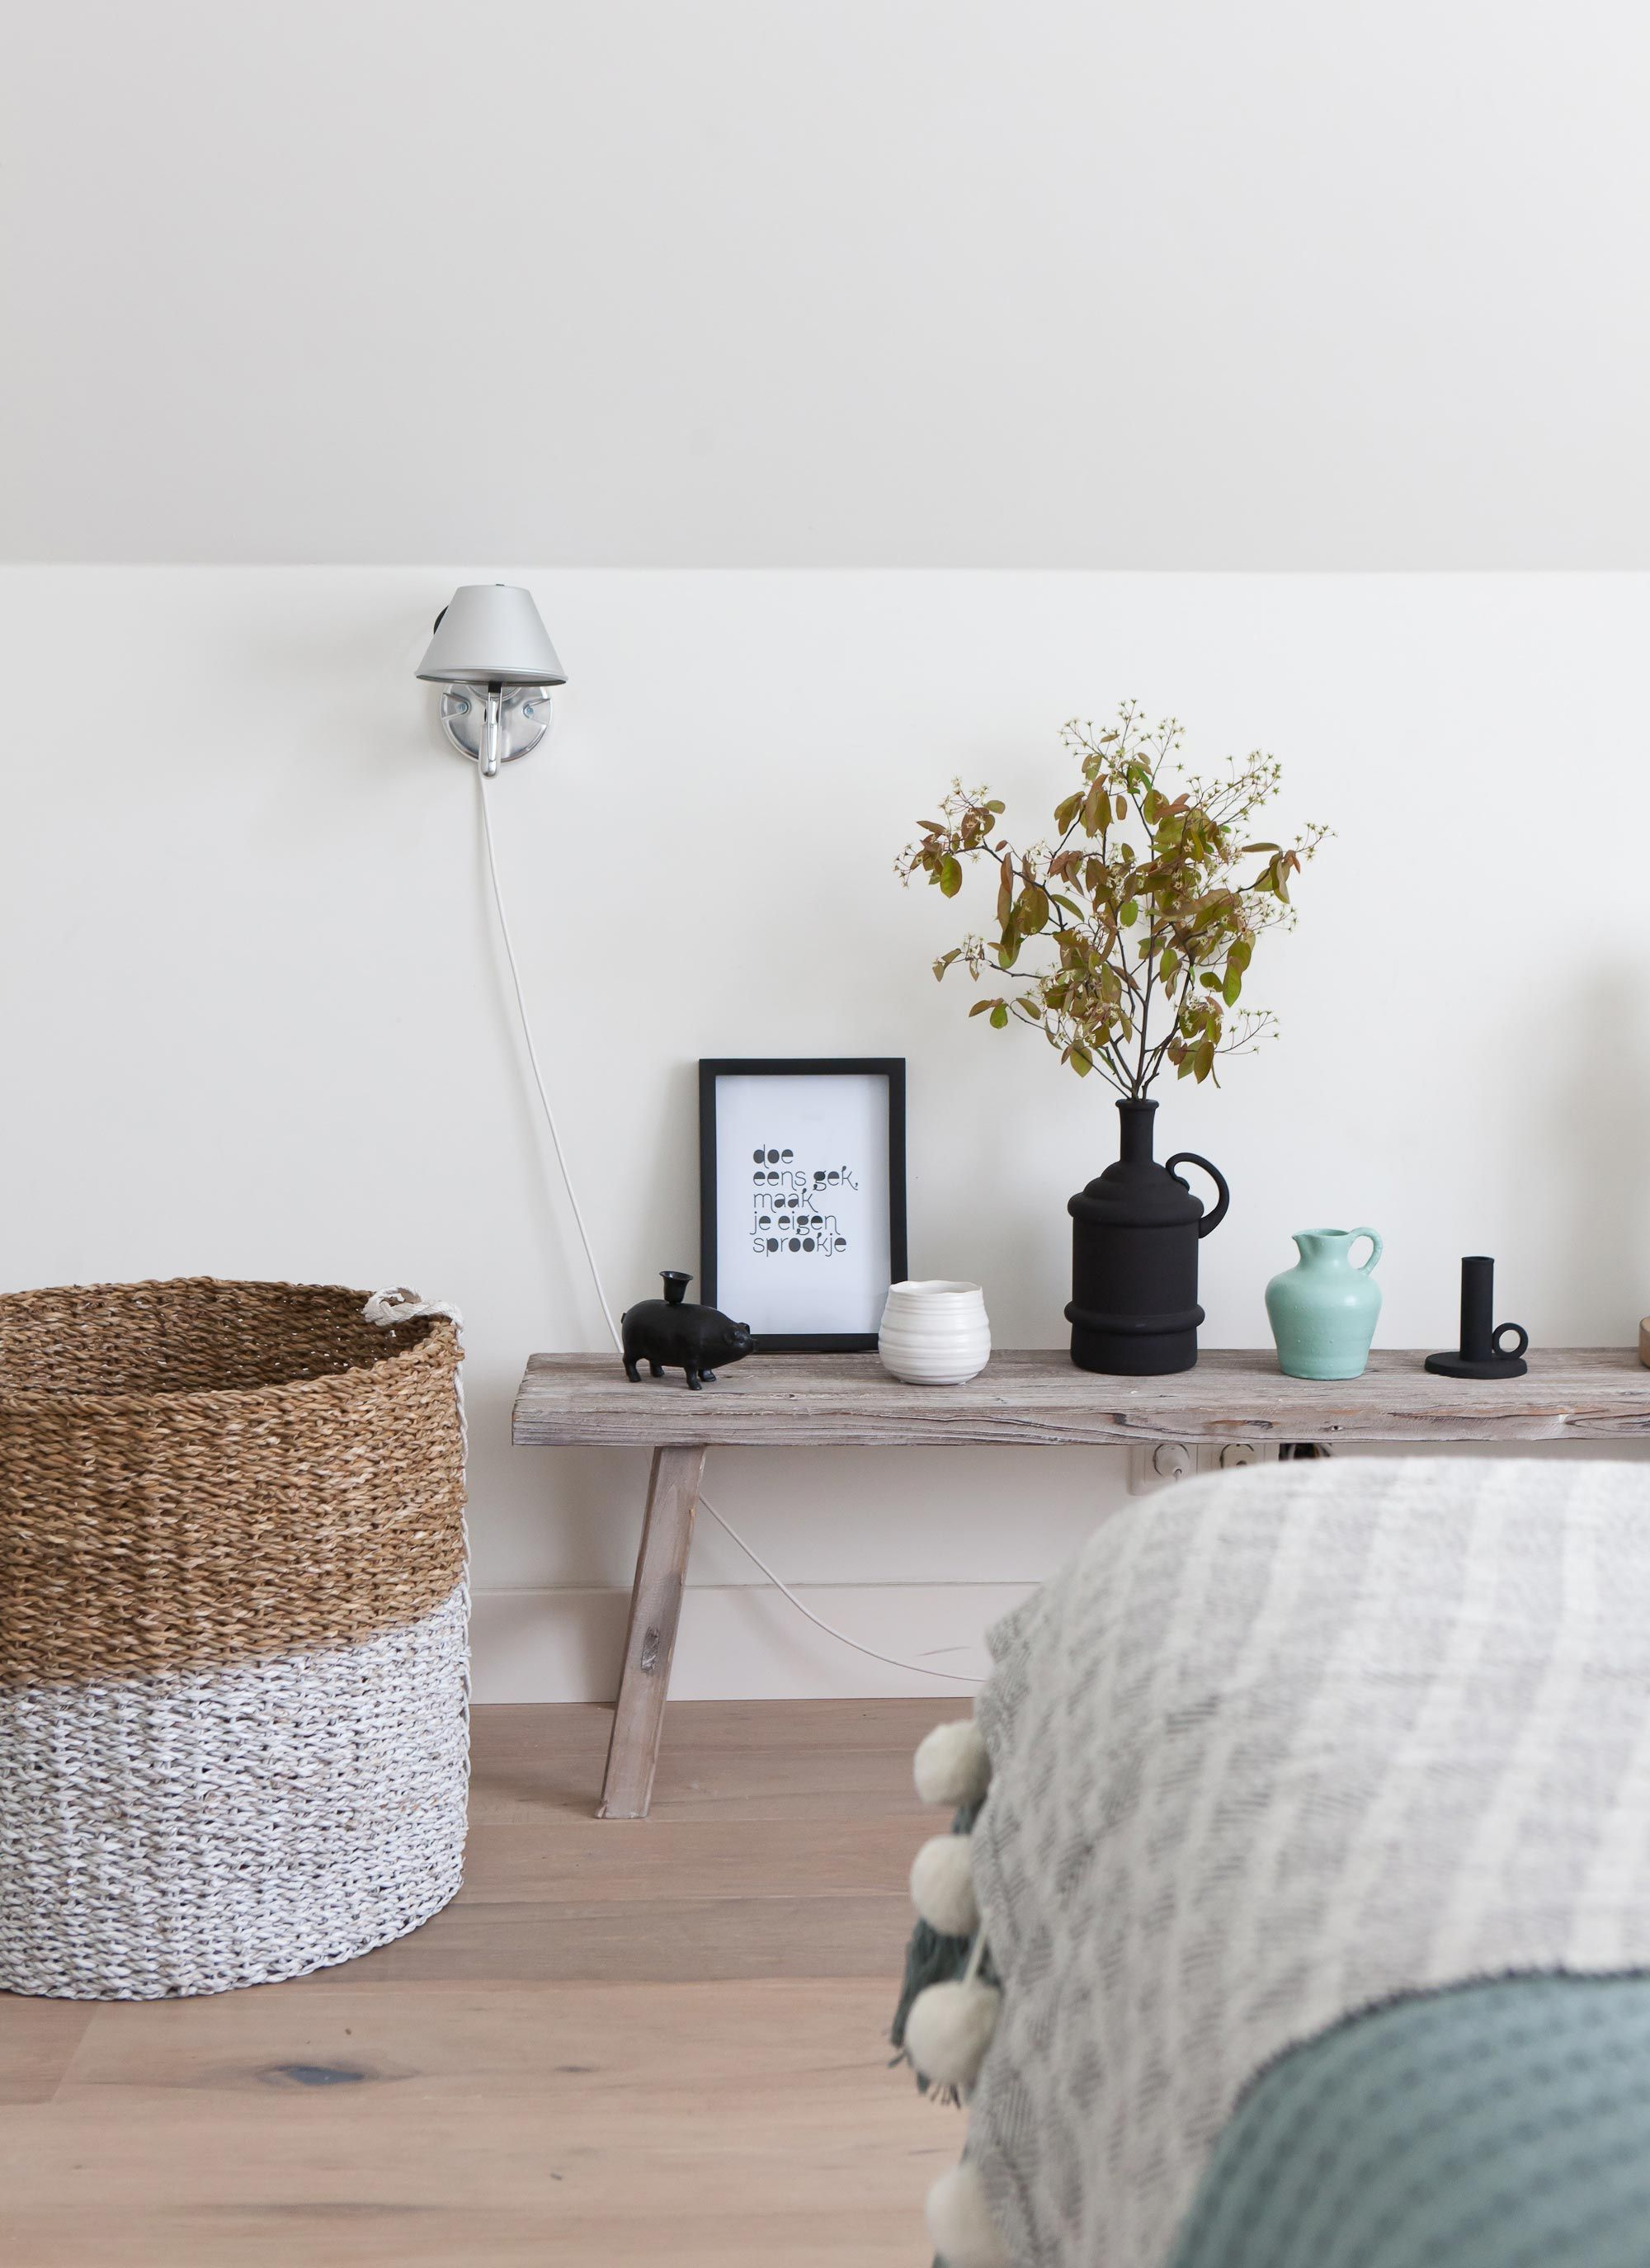 noretnic inspiration for the bedroom Houten bank